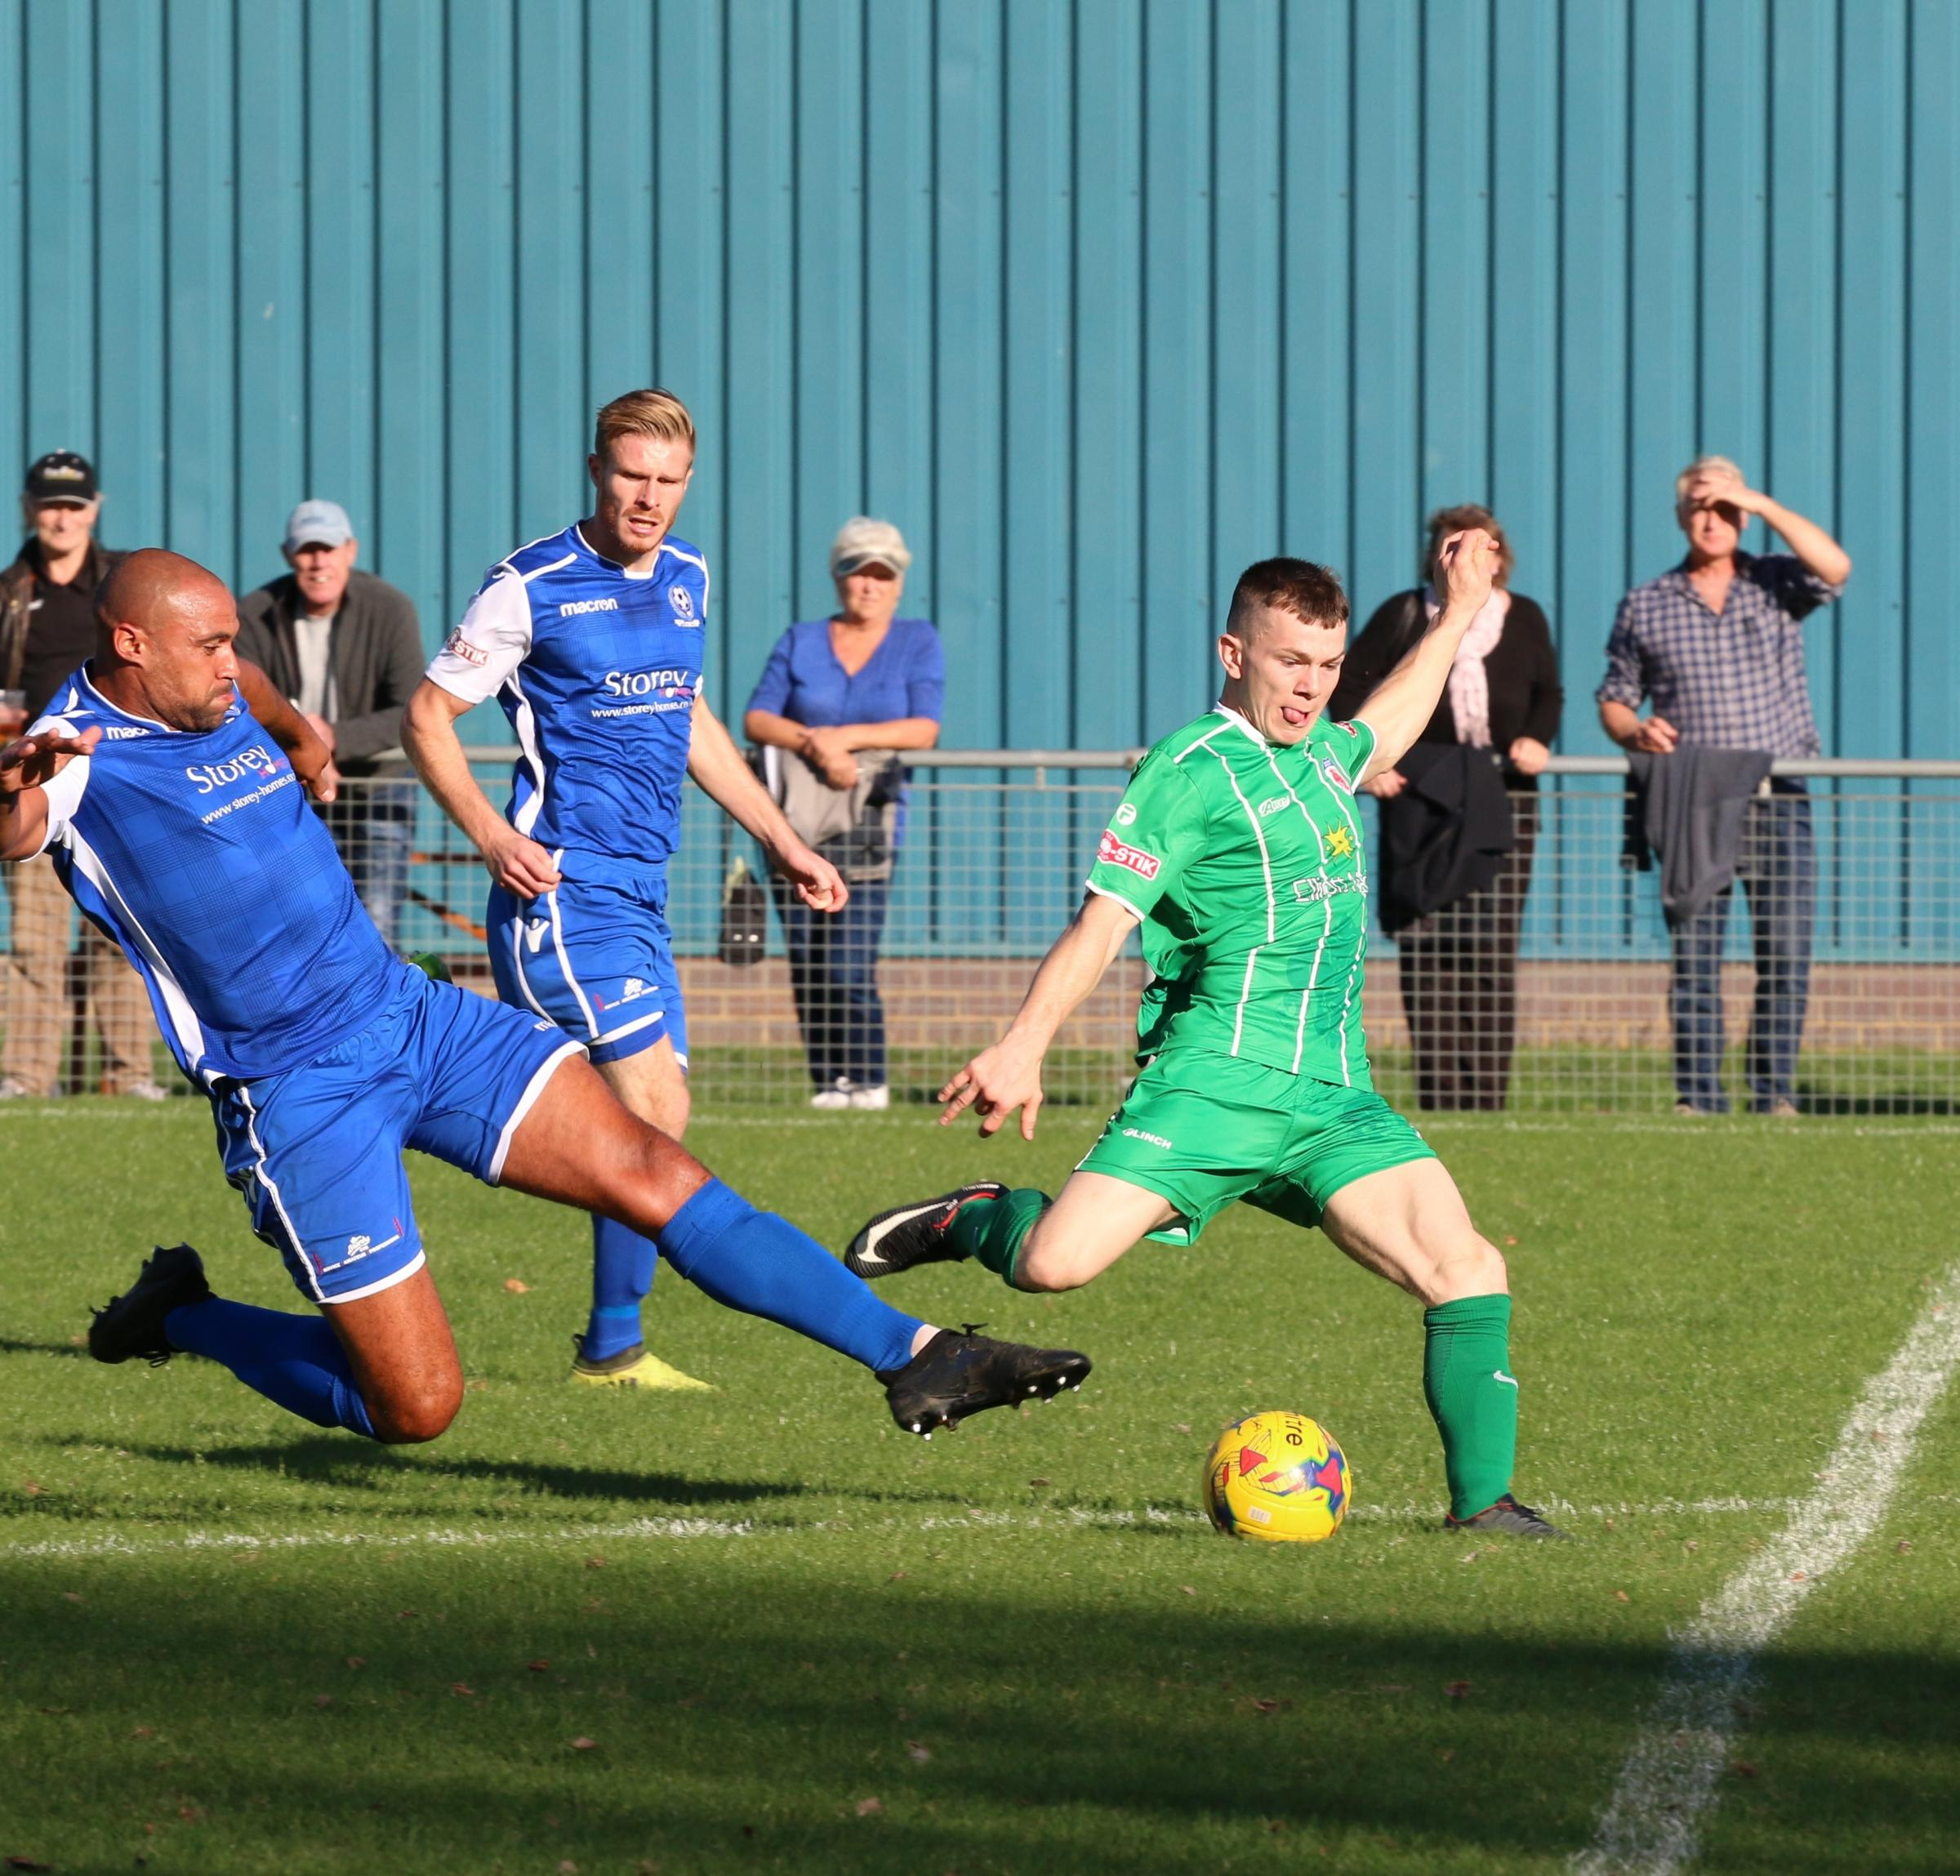 Jason Cowley in action against Bedford. Photo: David Besley